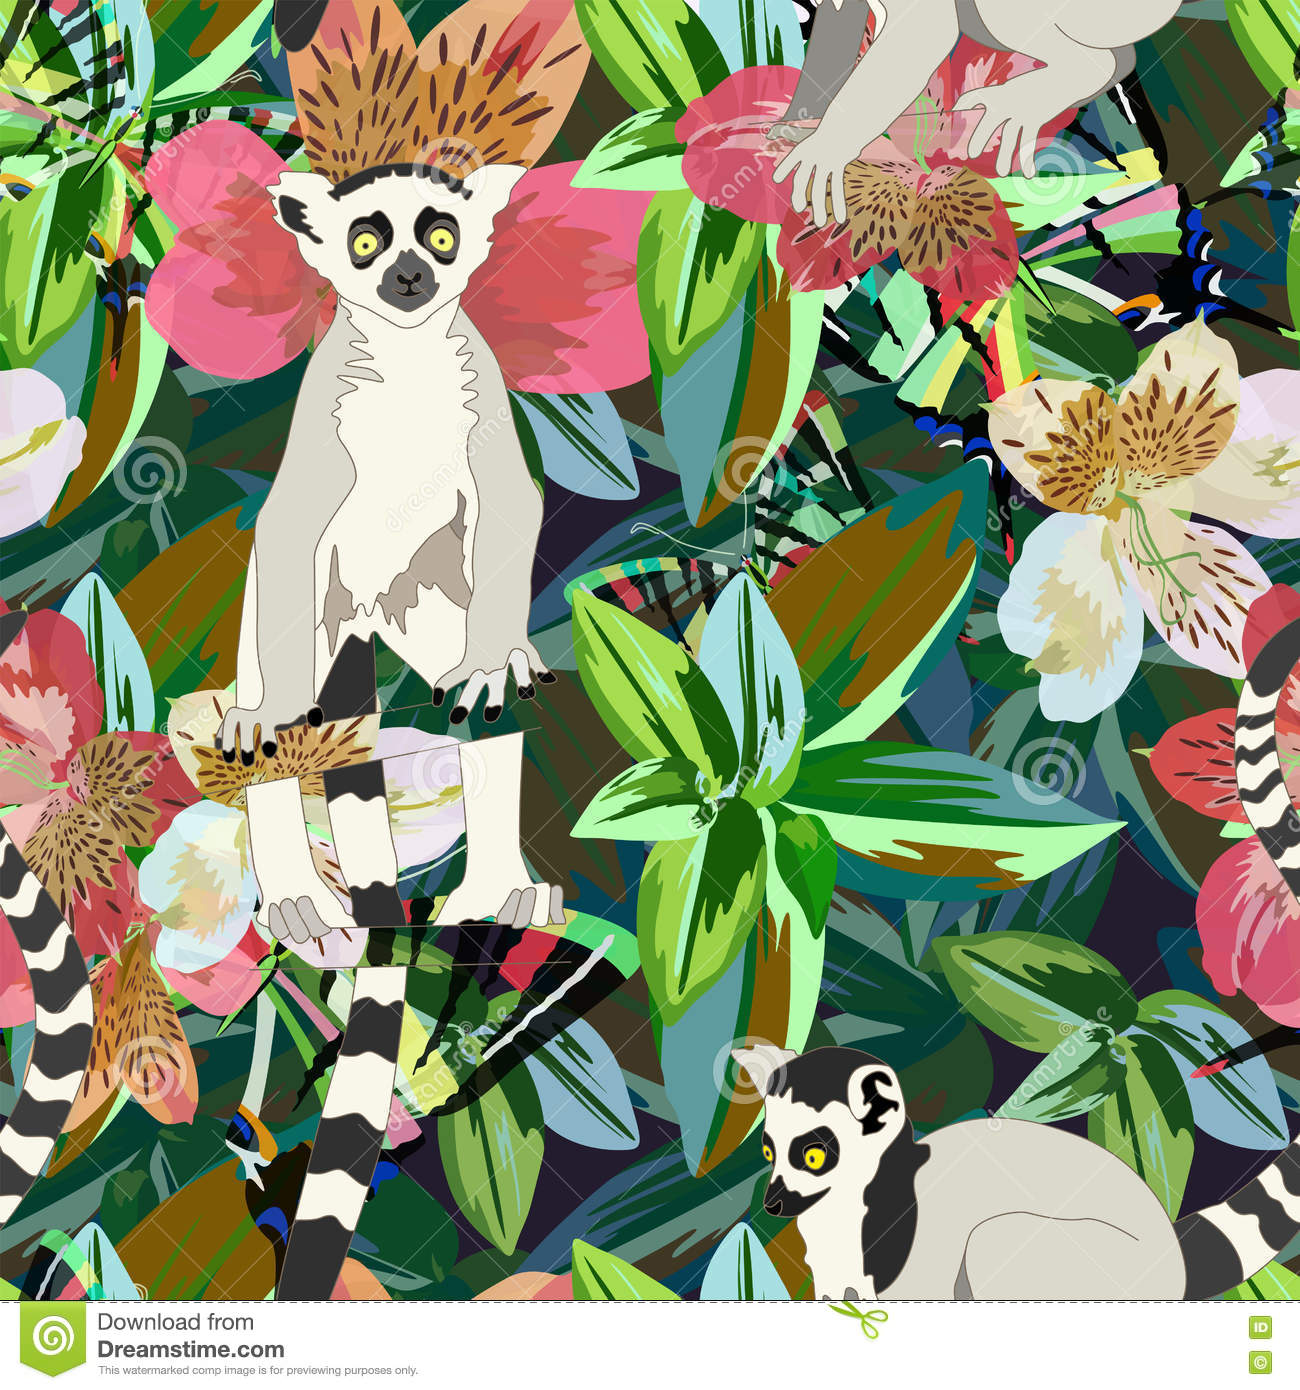 Abstract watercolor draw two lemur striped white black, background tropical forest